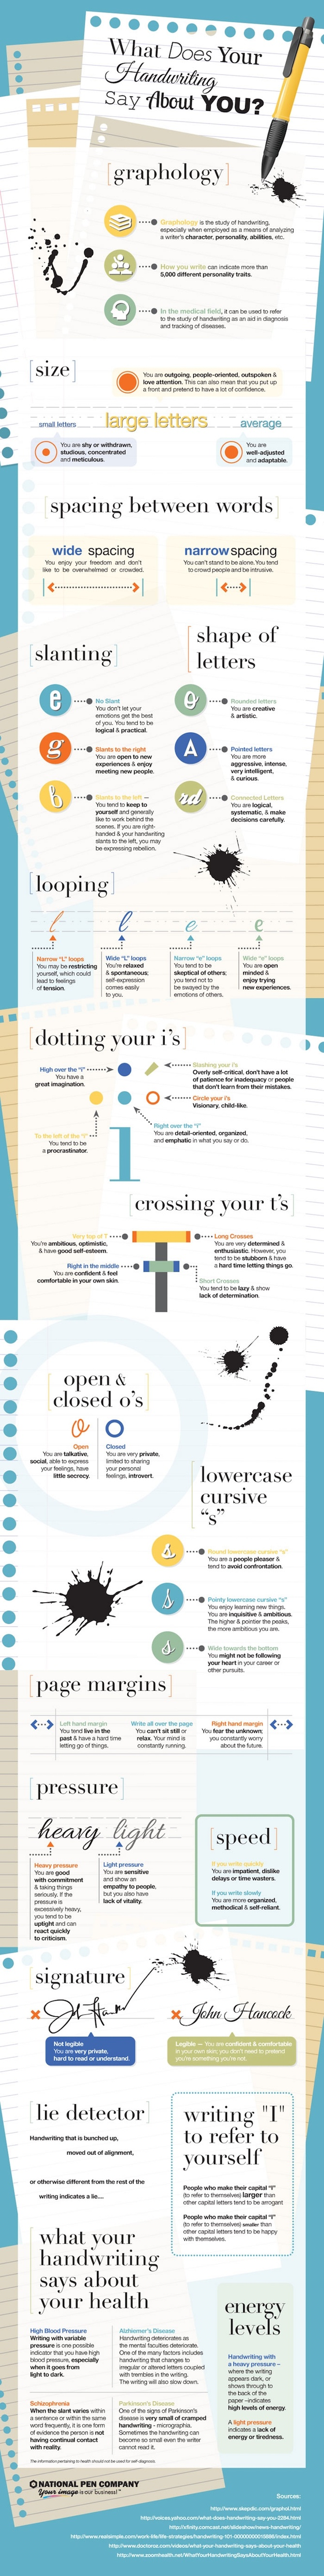 handwriting-infographic.jpeg